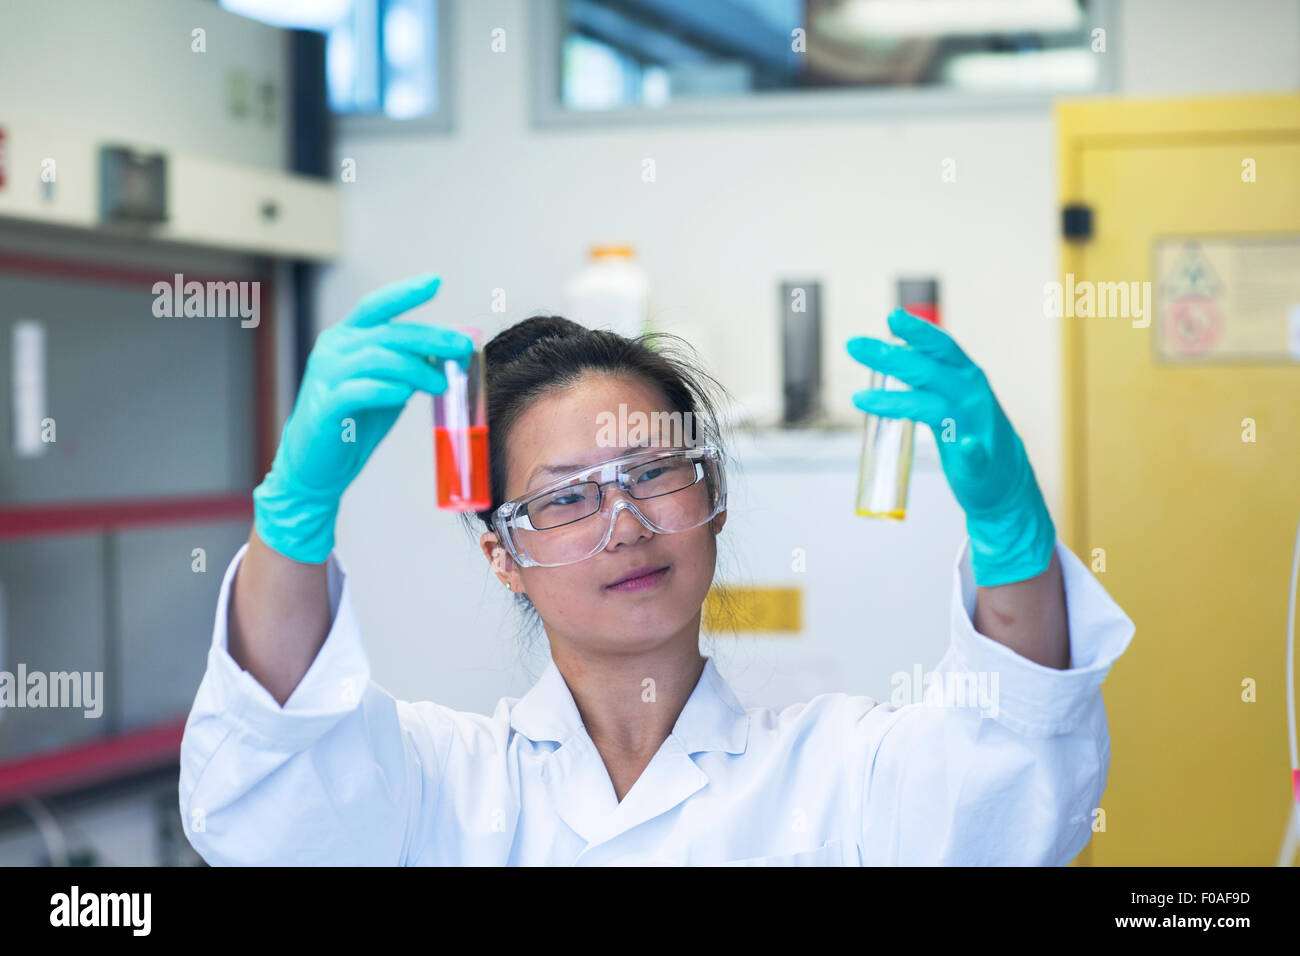 Young female scientist comparing two samples in lab - Stock Image